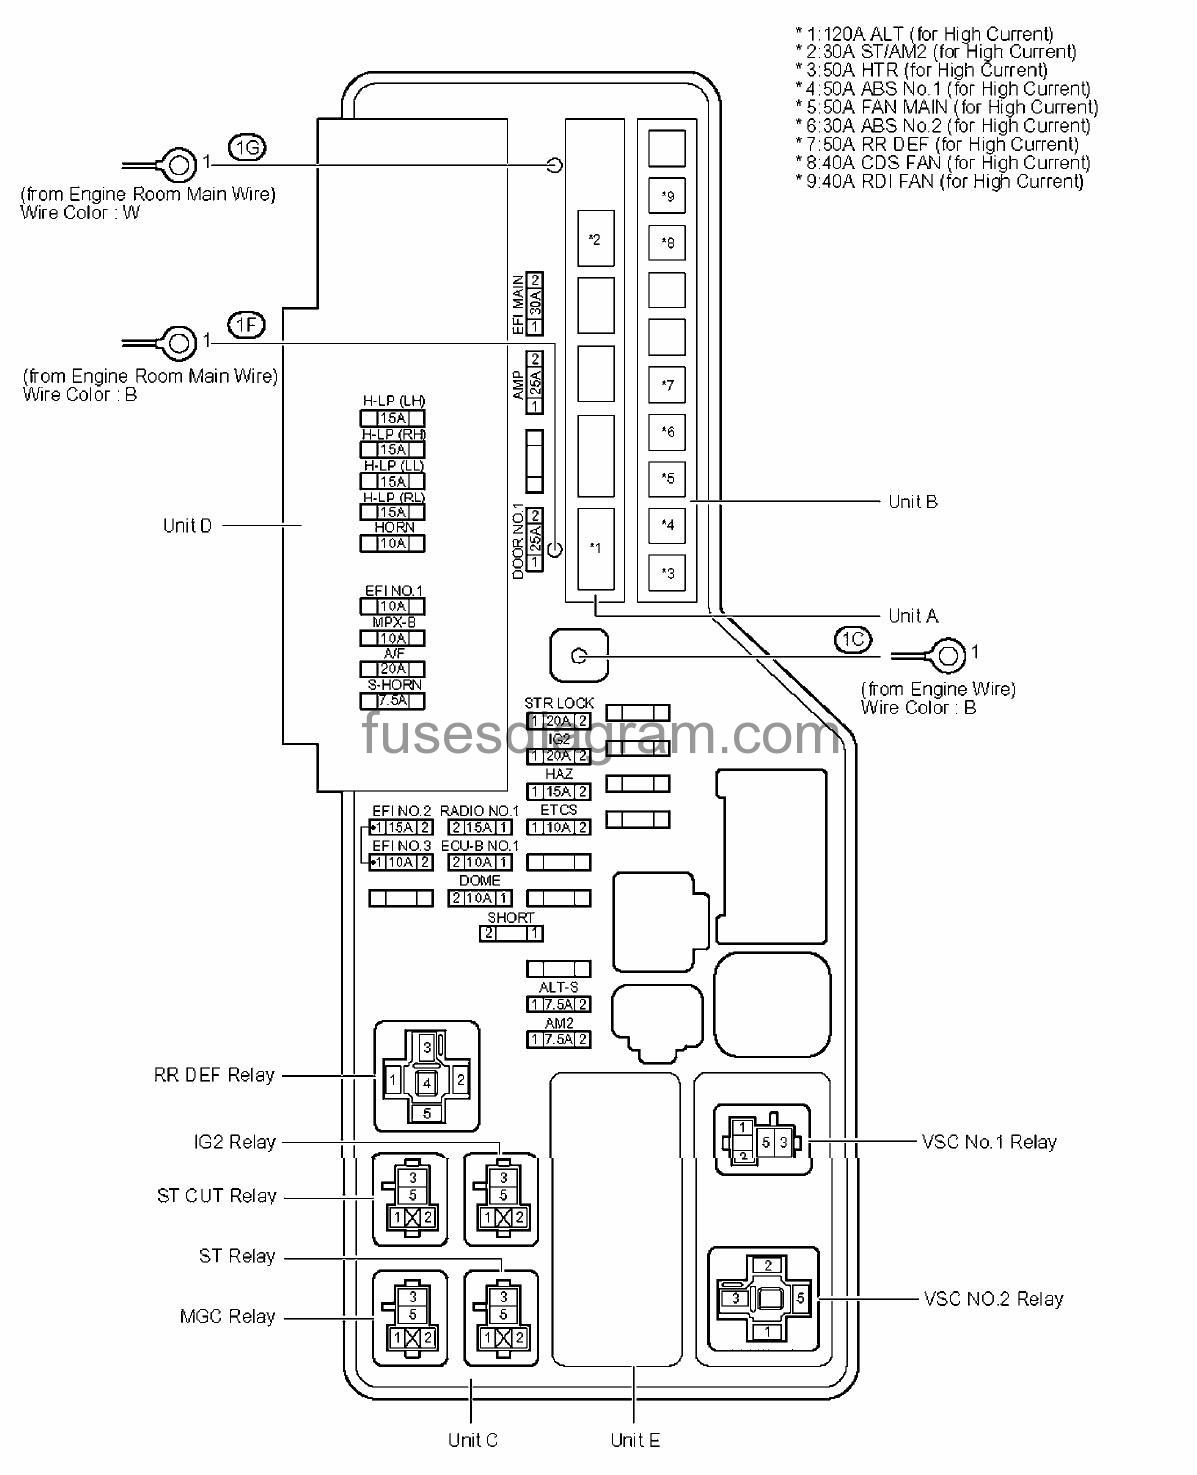 03 camry fuse diagram basic electronics wiring diagram 1991 Toyota Camry Engine Diagram 99 toyota camry fuse box wiring diagrams wireinterior toyota sienna fuse diagram wiring diagram 1991 toyota